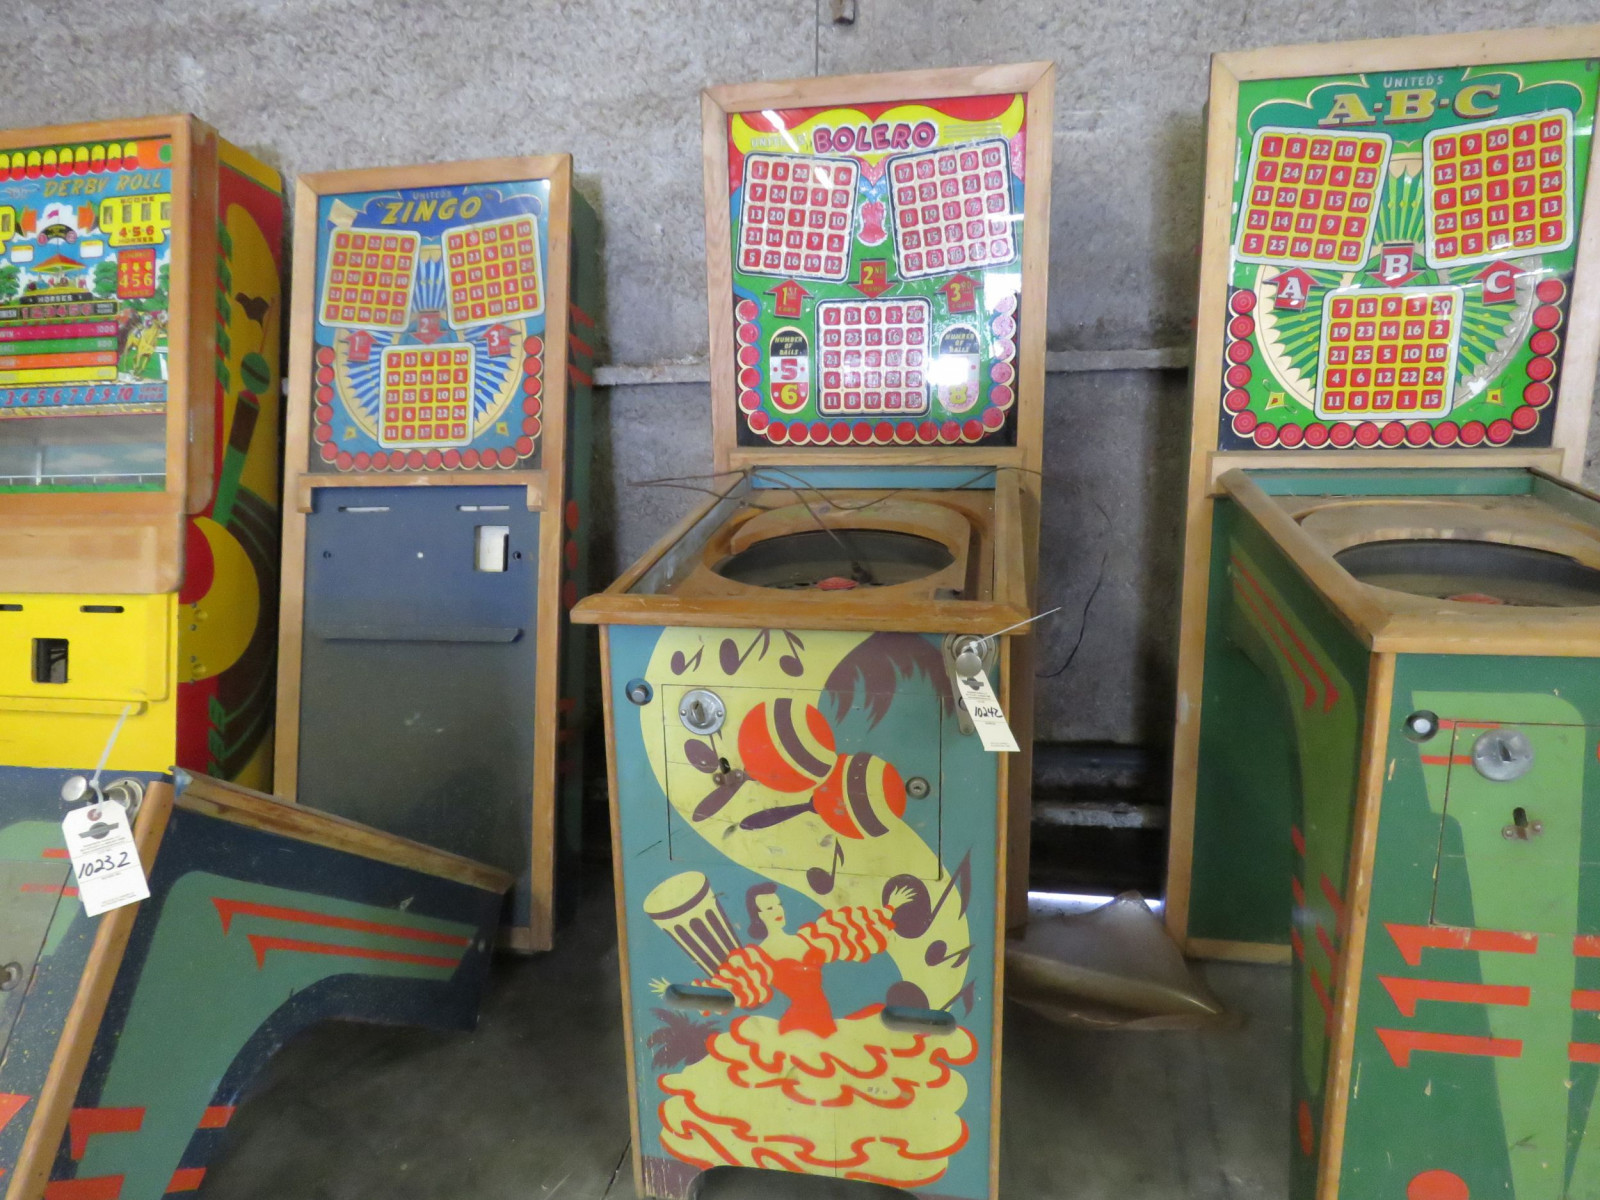 Vintage Bolero Pinball Machine by United - Image 1